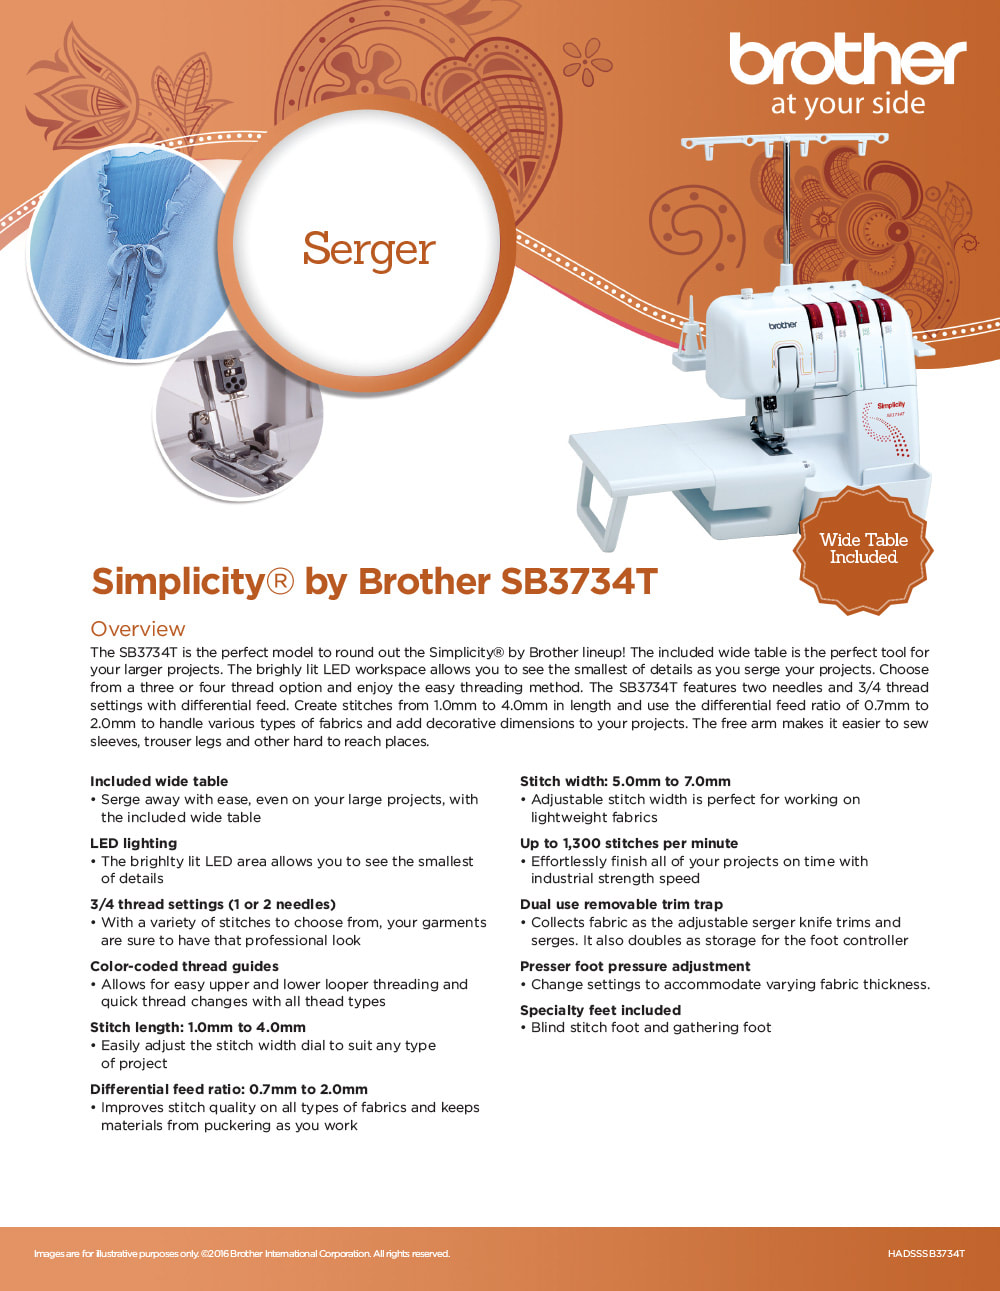 Brother Simplicity Brother SB3734T Serger